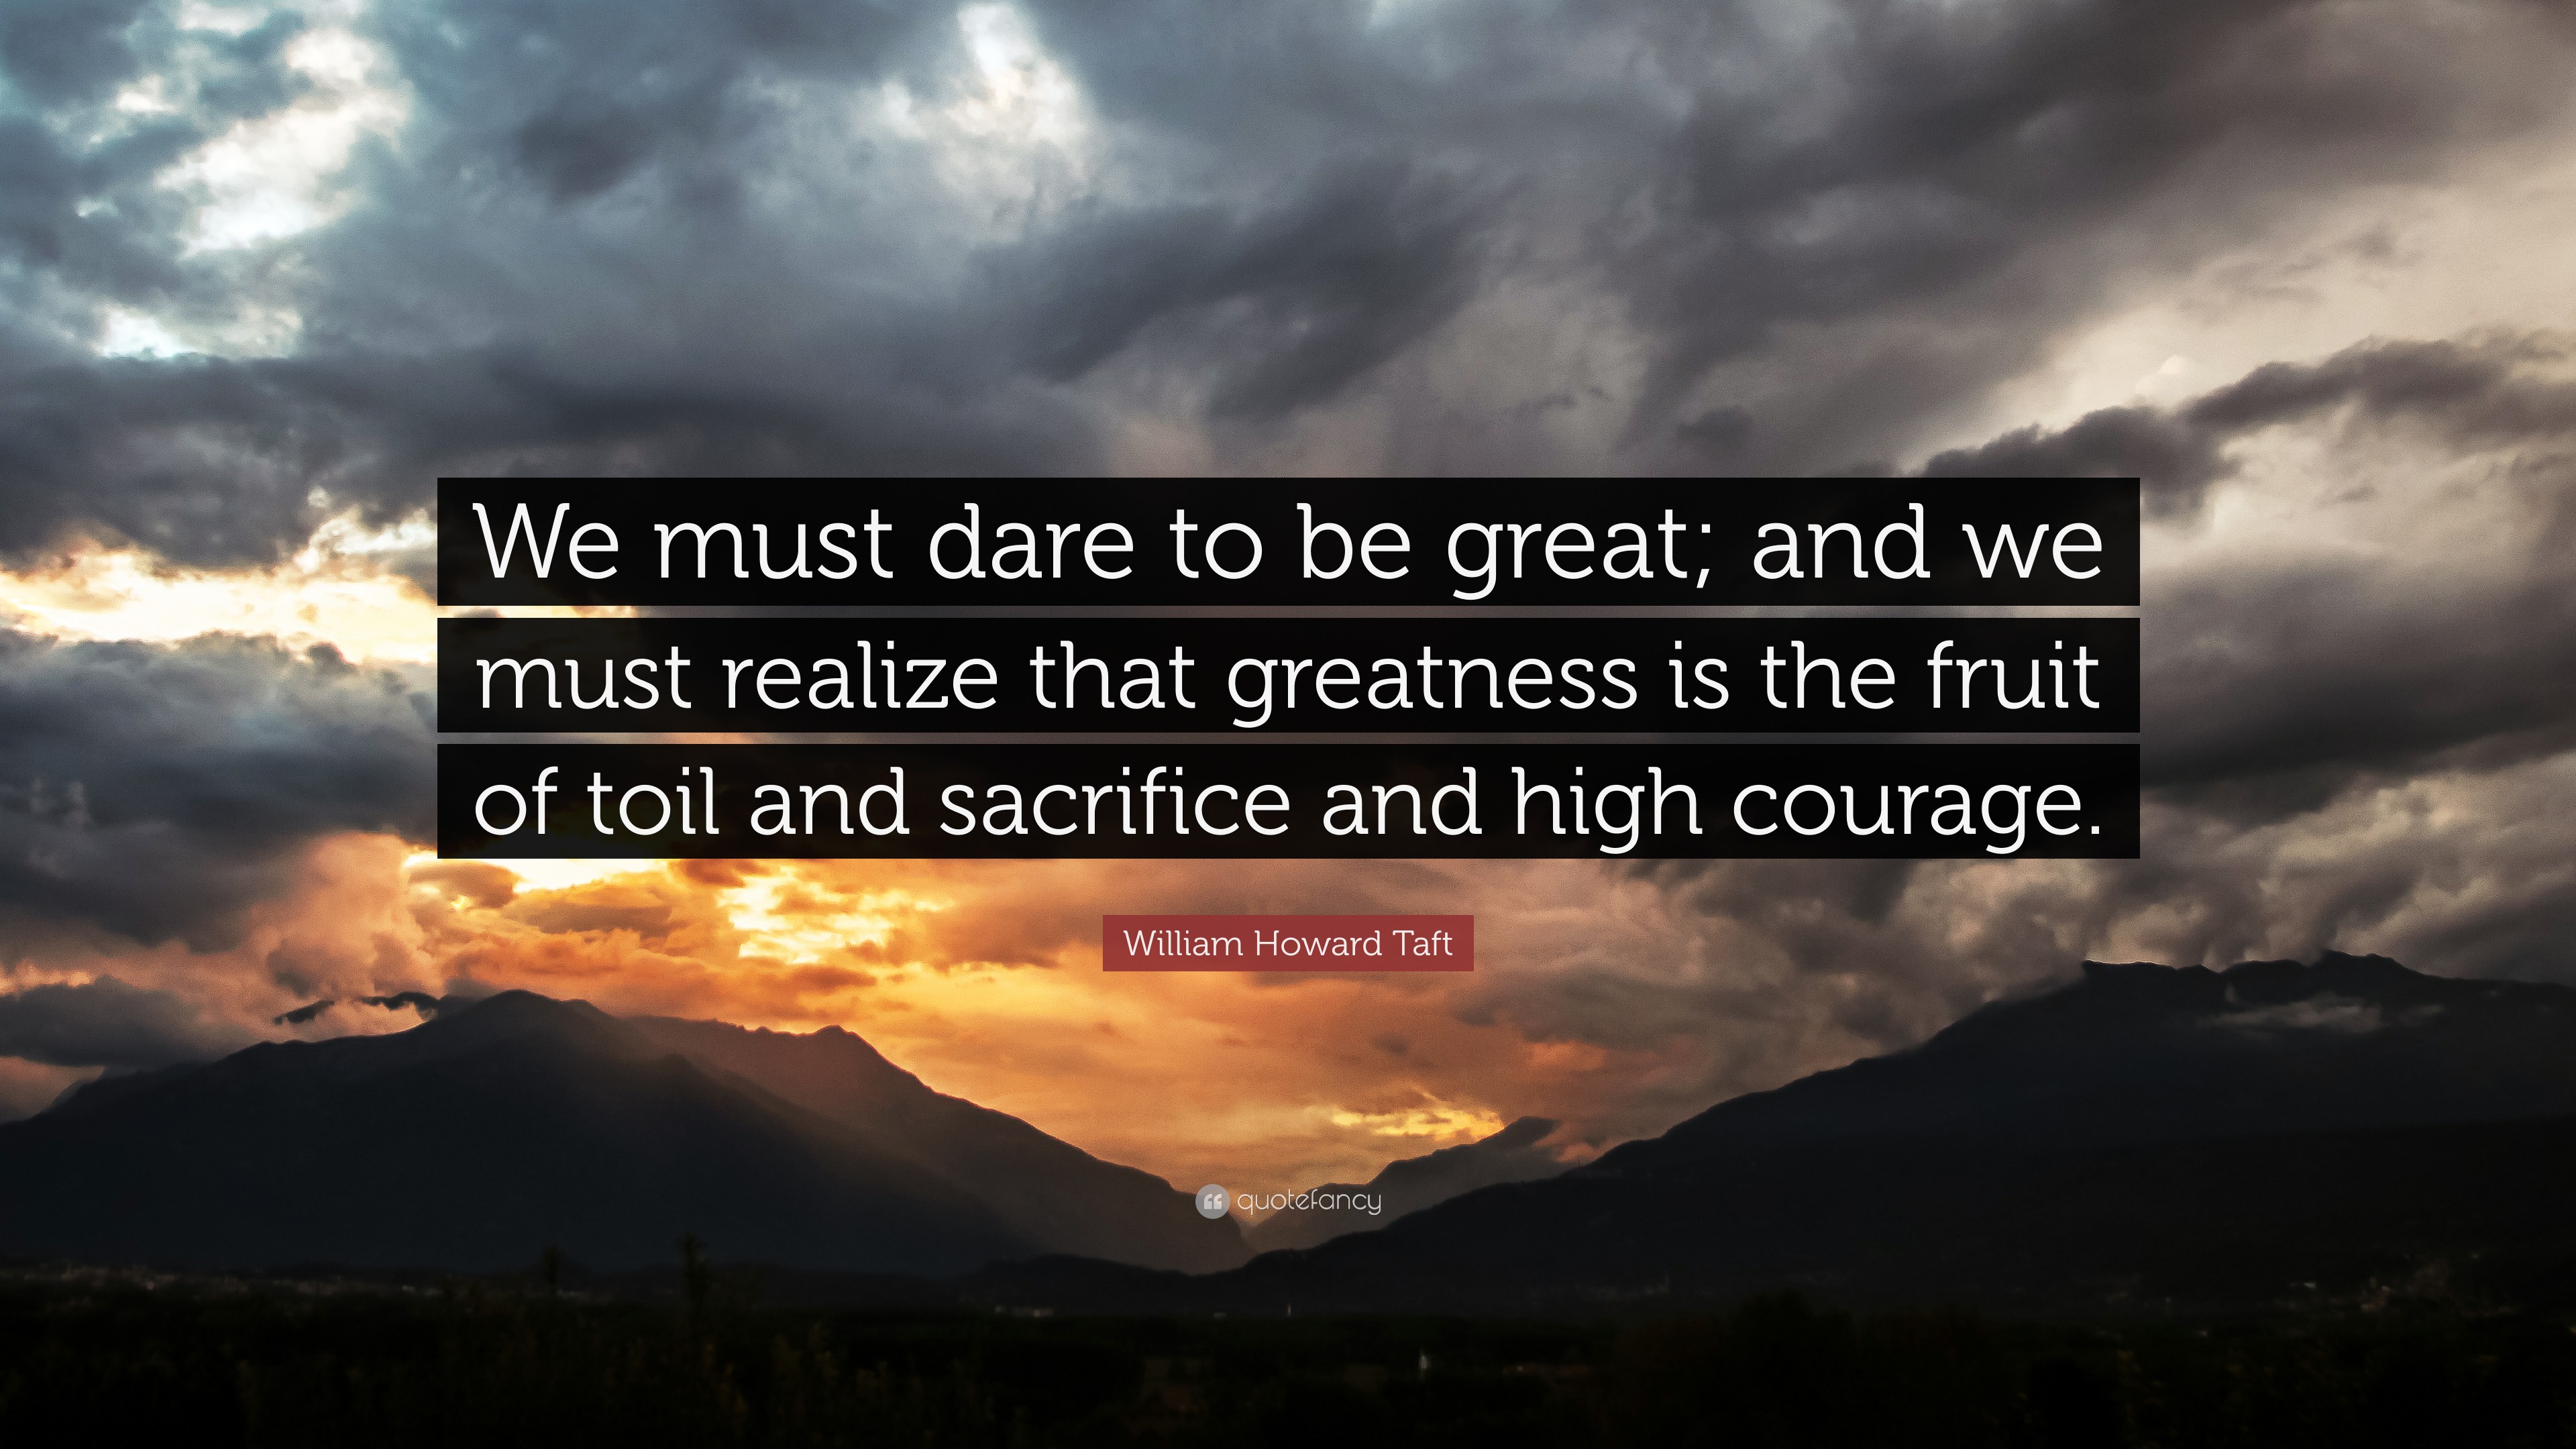 william howard taft quote   u201cwe must dare to be great  and